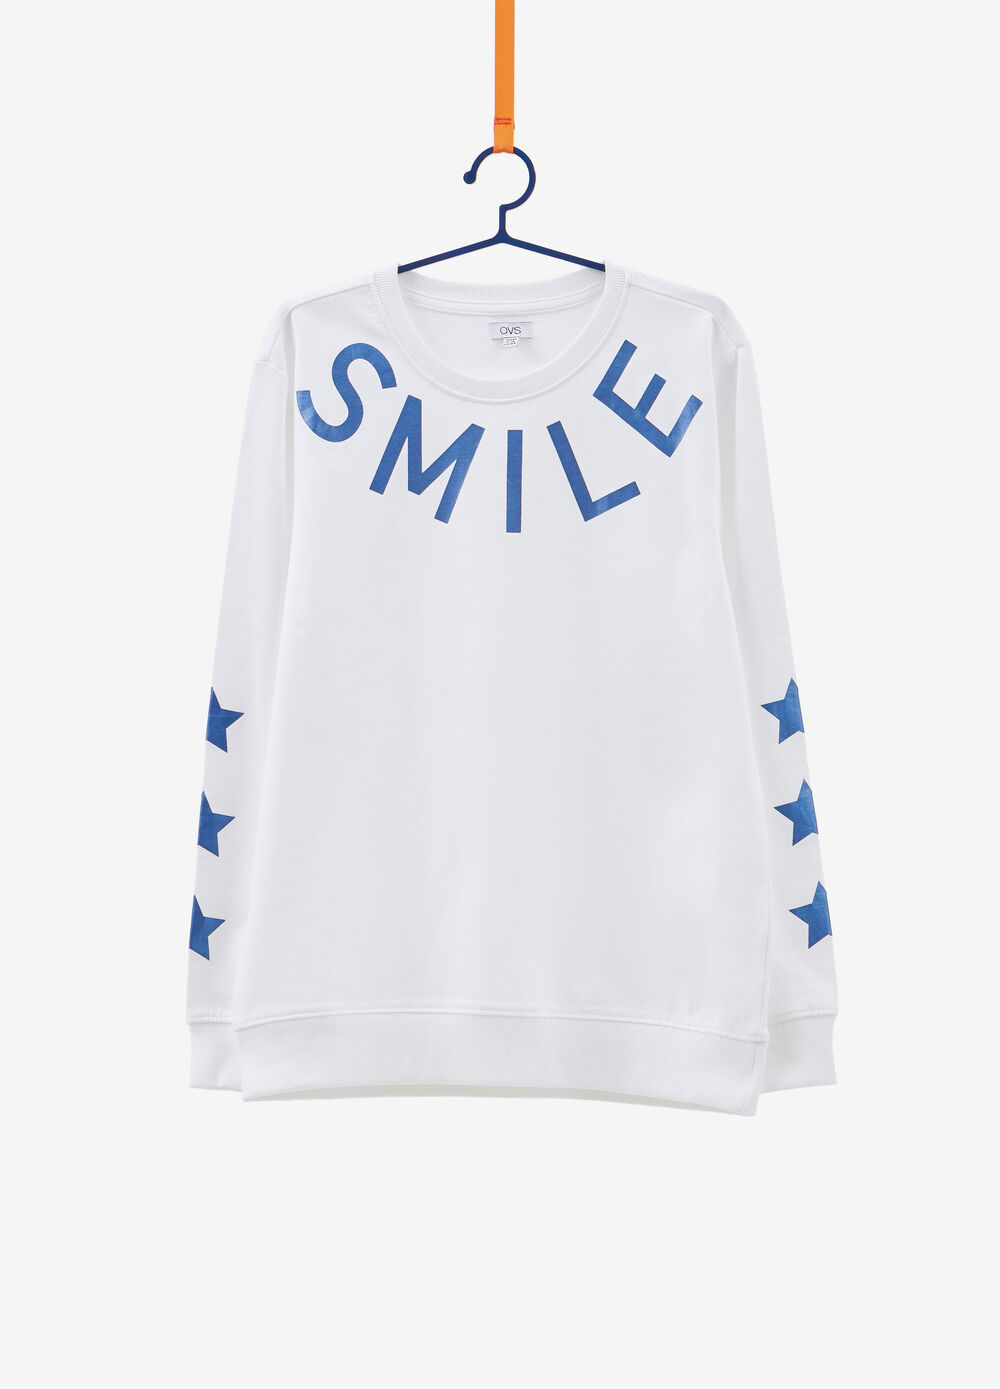 Sweatshirt in cotton with printed lettering and stars